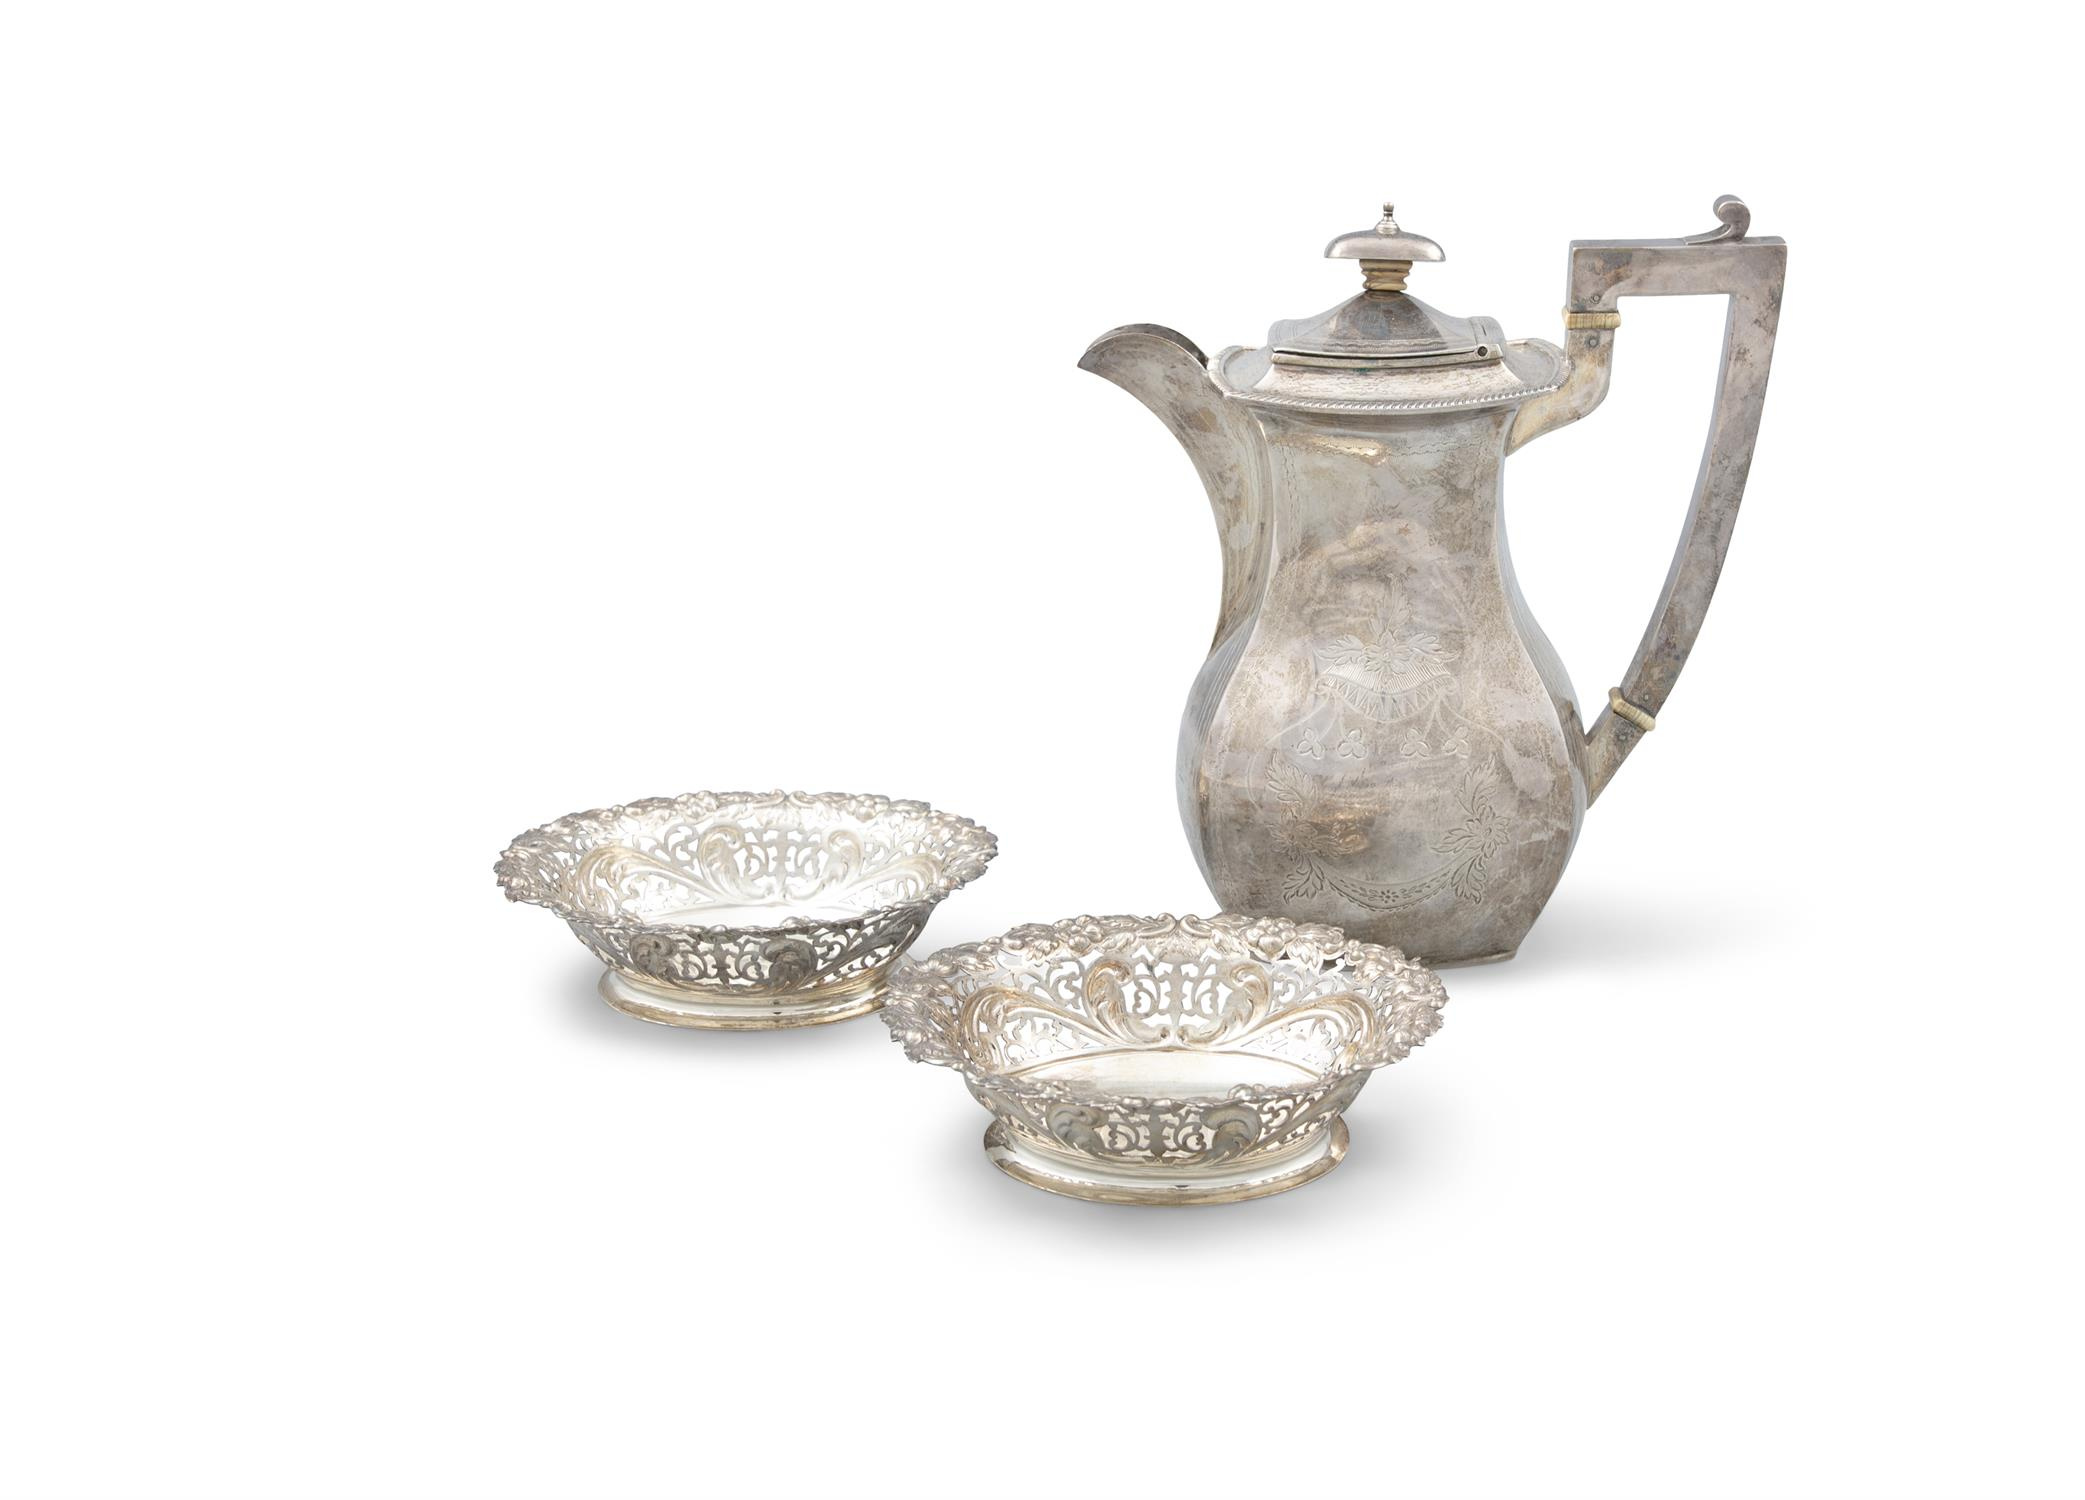 A PAIR OF VICTORIAN SILVER SWEETMEAT BASKETS, London c. 1894, maker's mark of Holland,